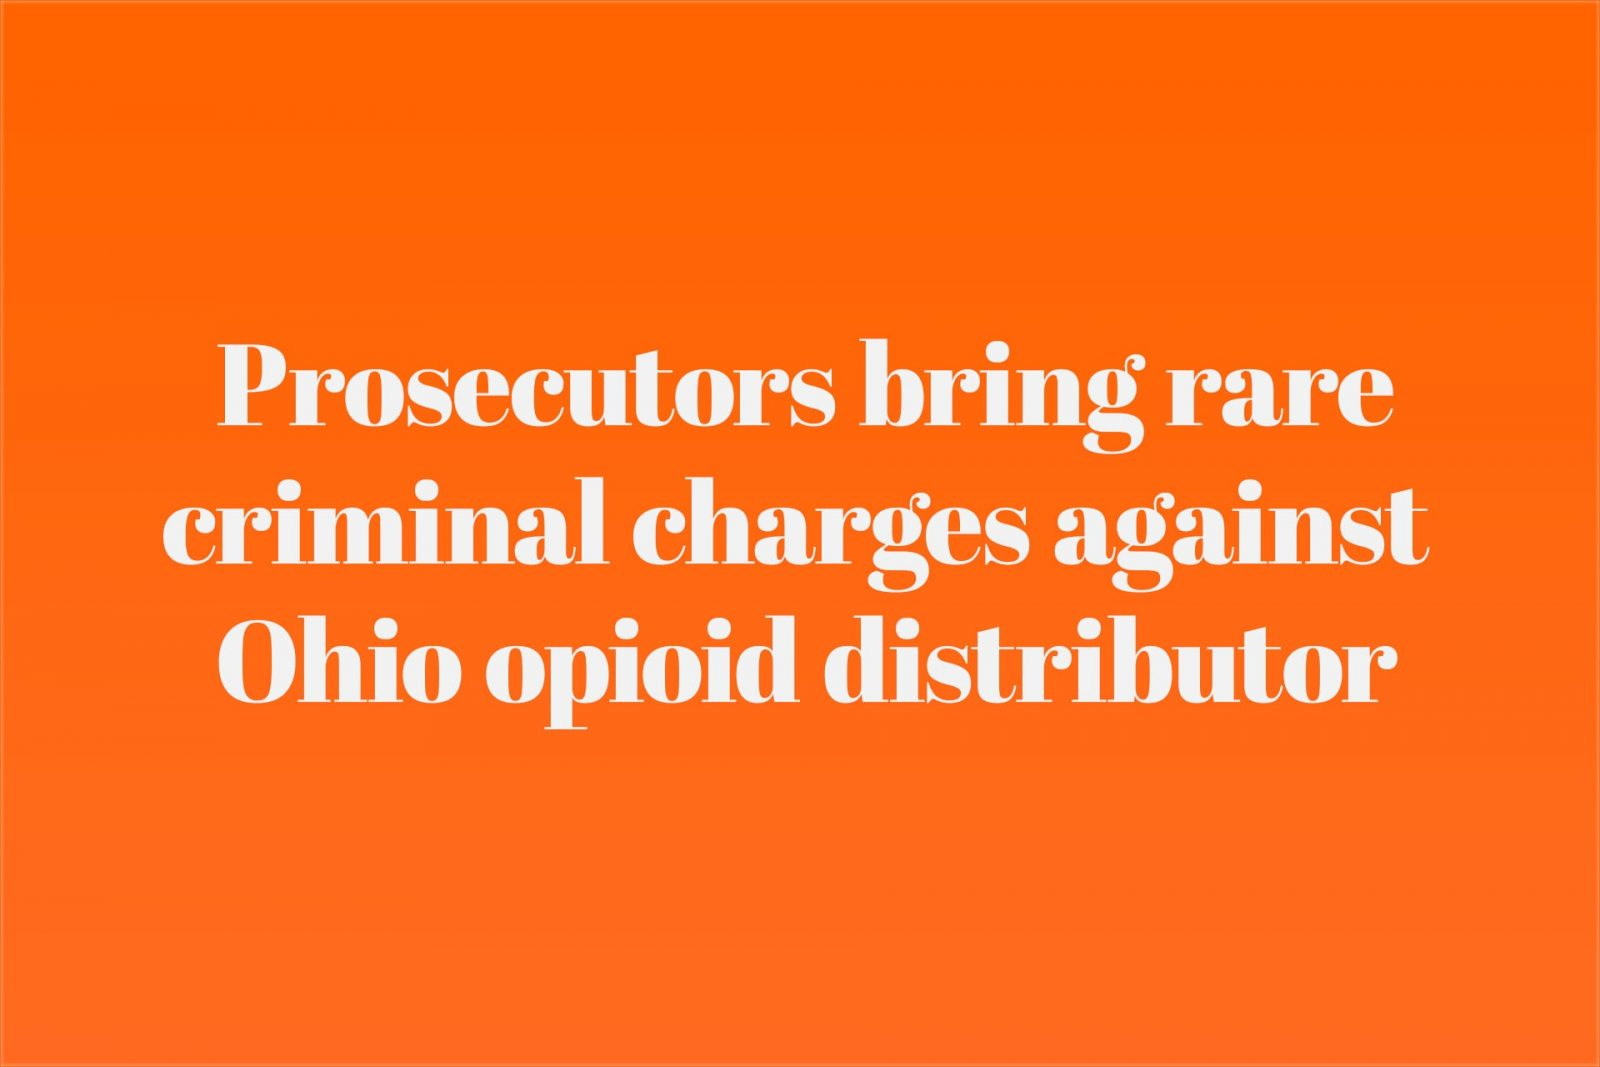 Prosecutors bring rare criminal charges against Ohio opioid distributor